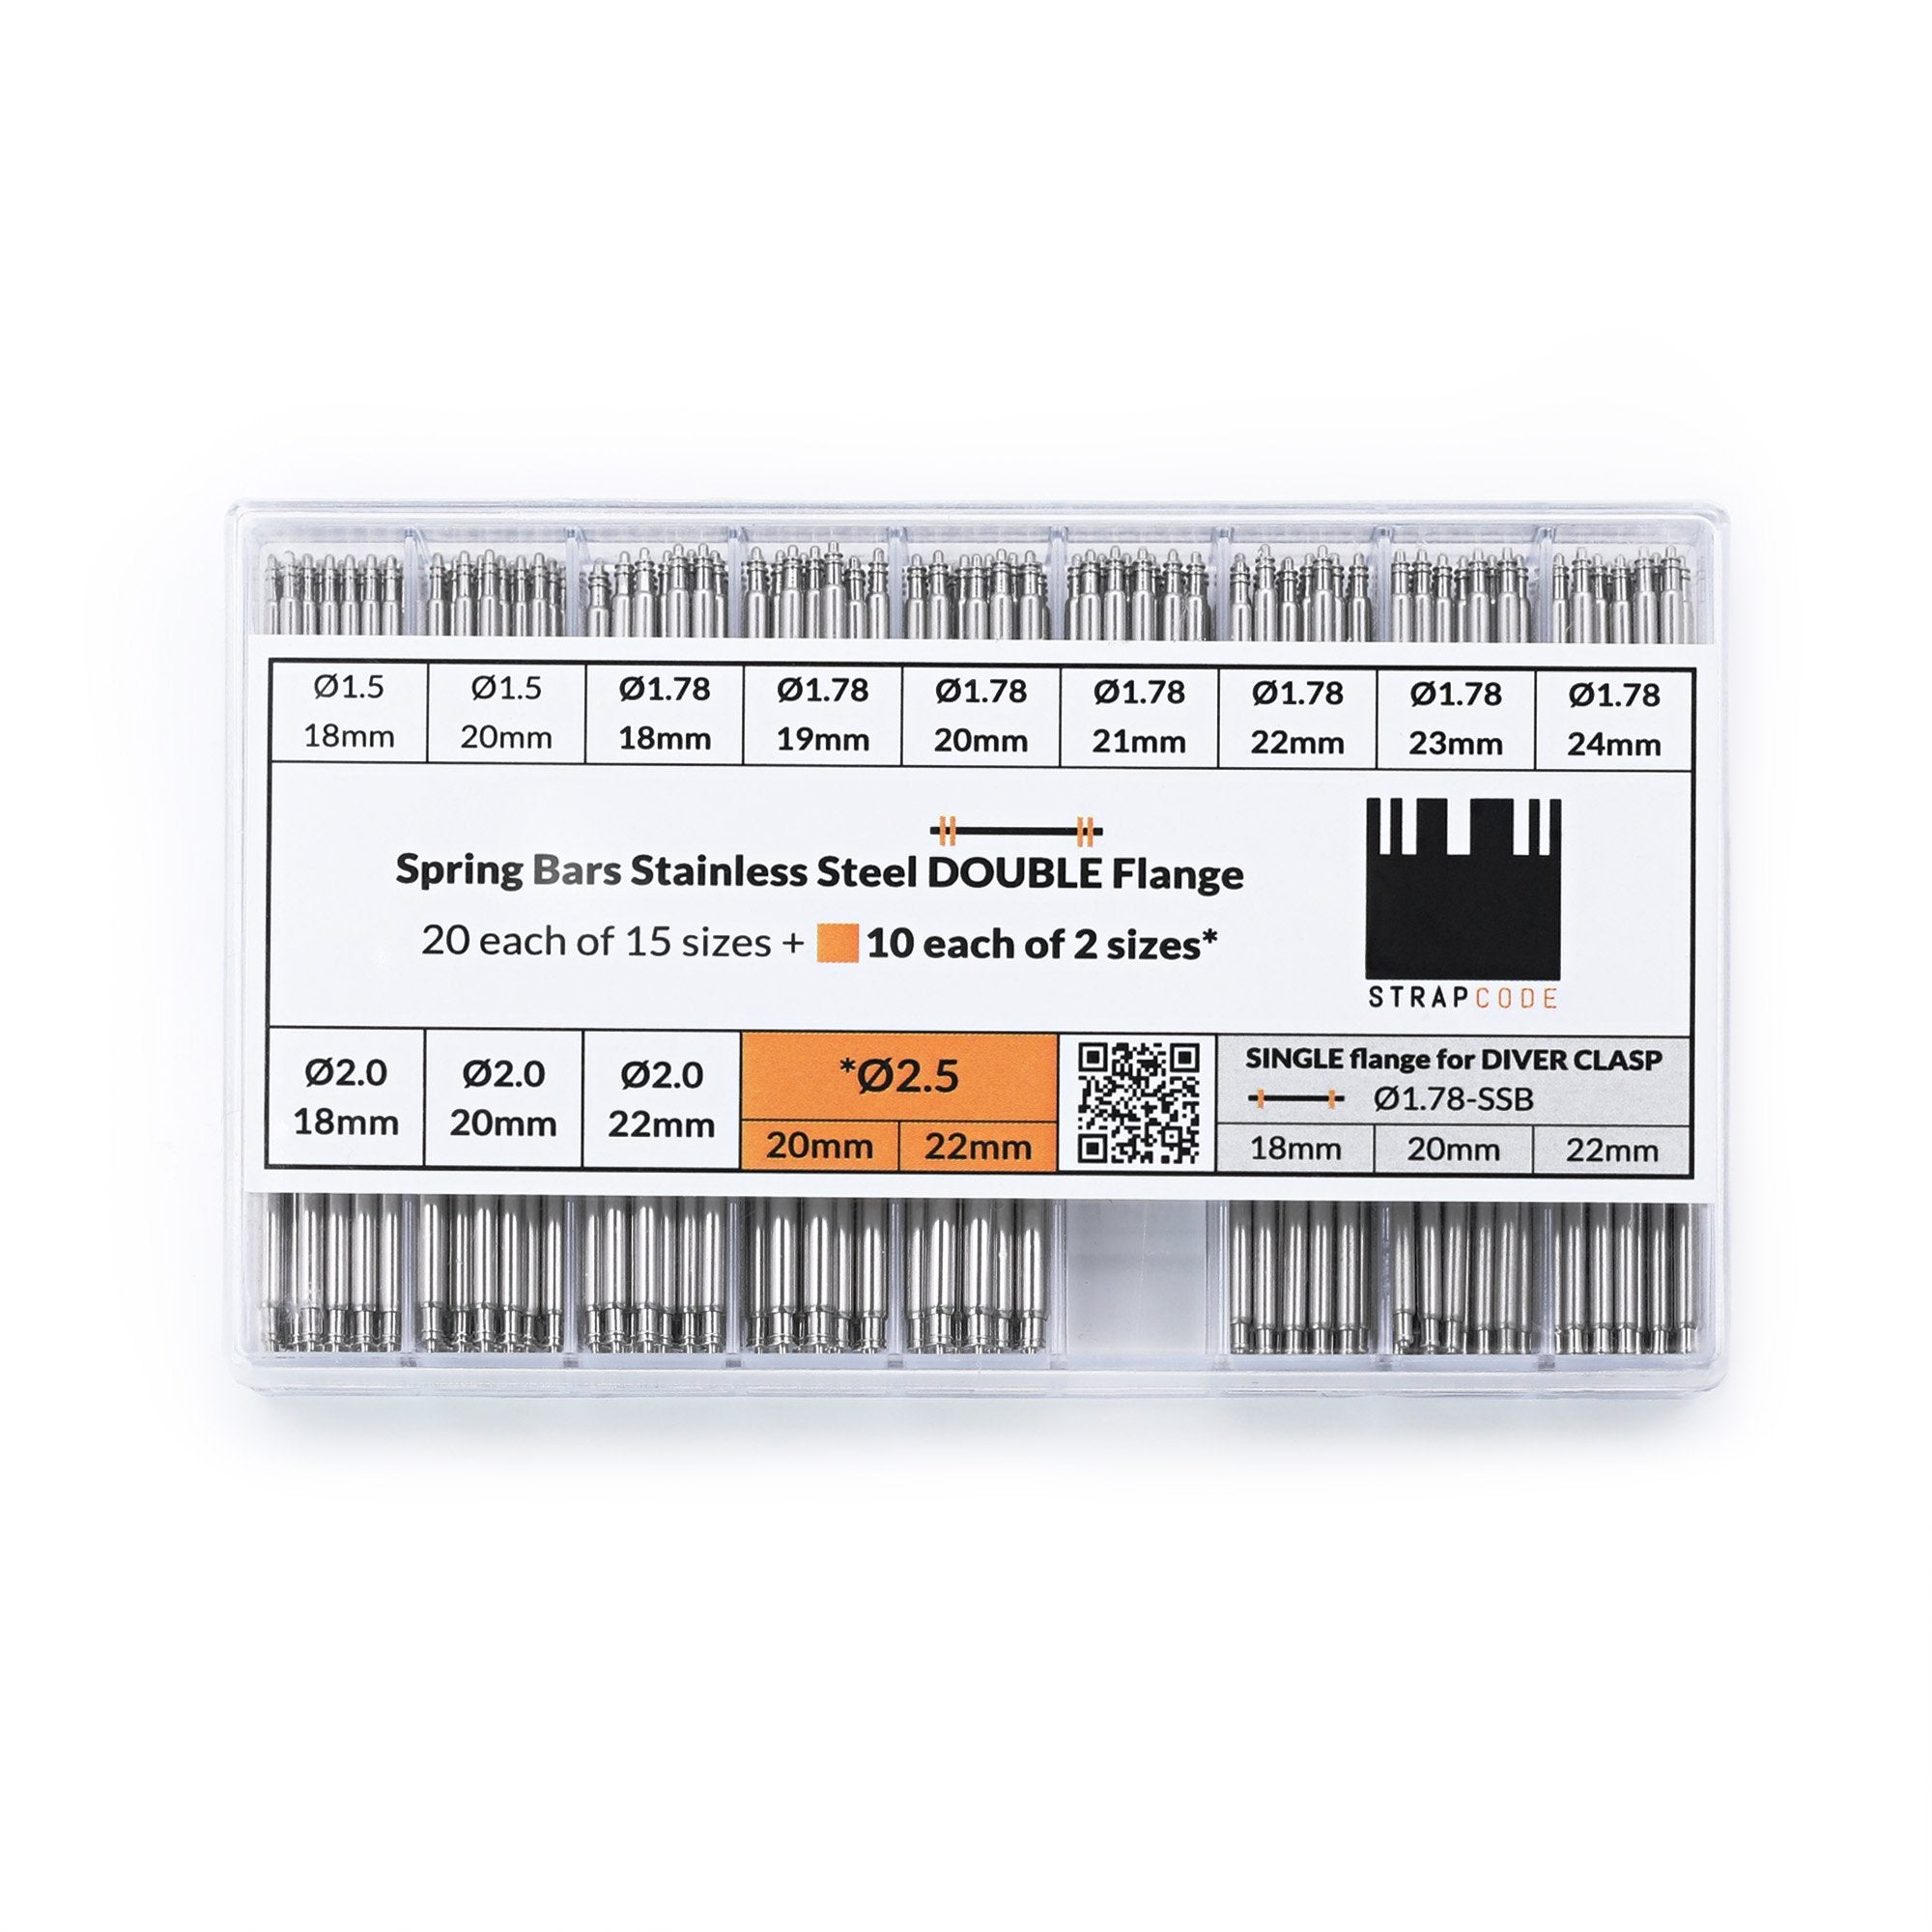 Professional Spring Bar Graded Box for Watch Bands - 320pcs/Box Strapcode Watch Bands Tool